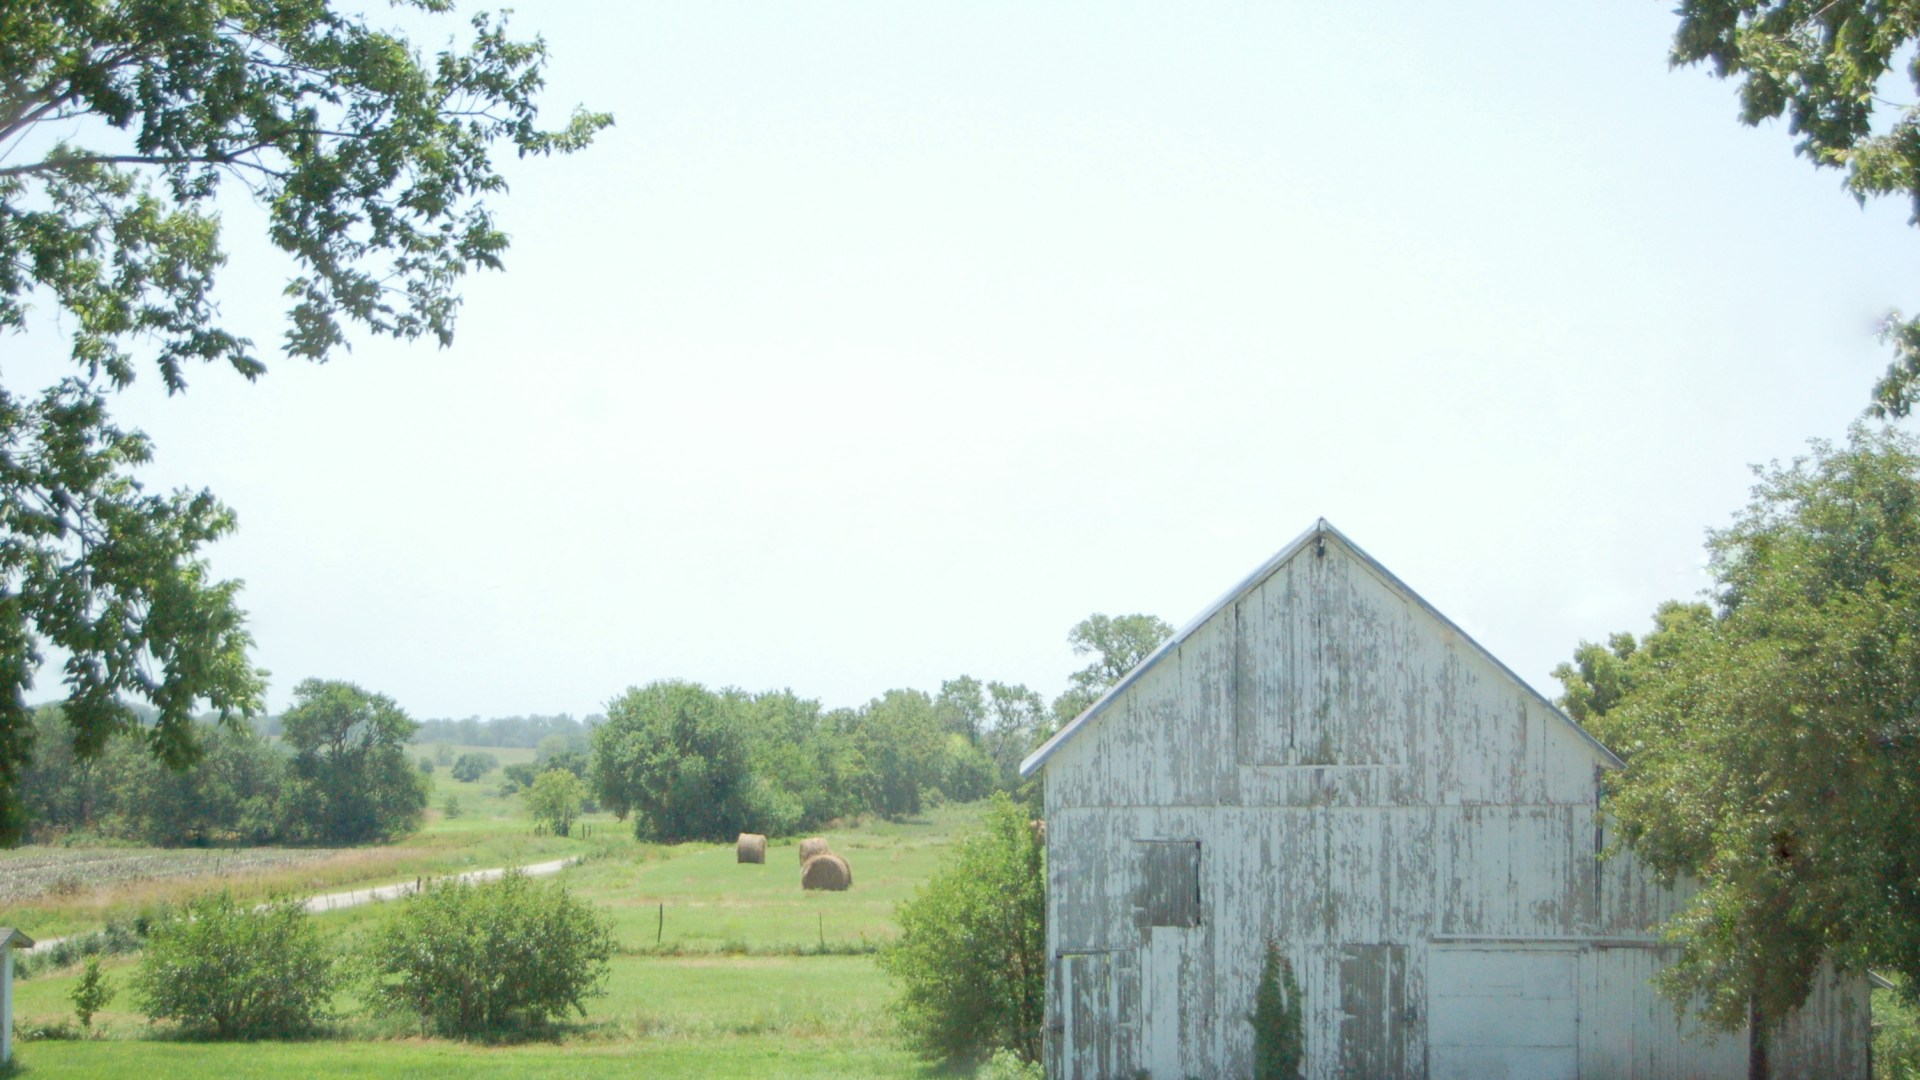 The History of Our Little Farm on the Prairie